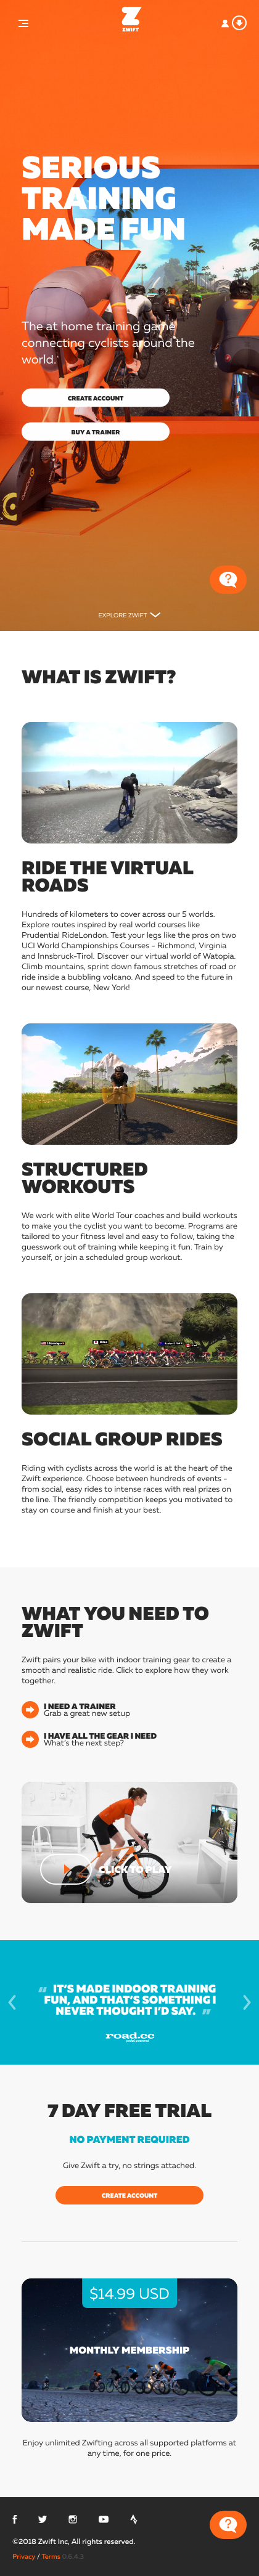 Mobile Landing Page Example: zwift com